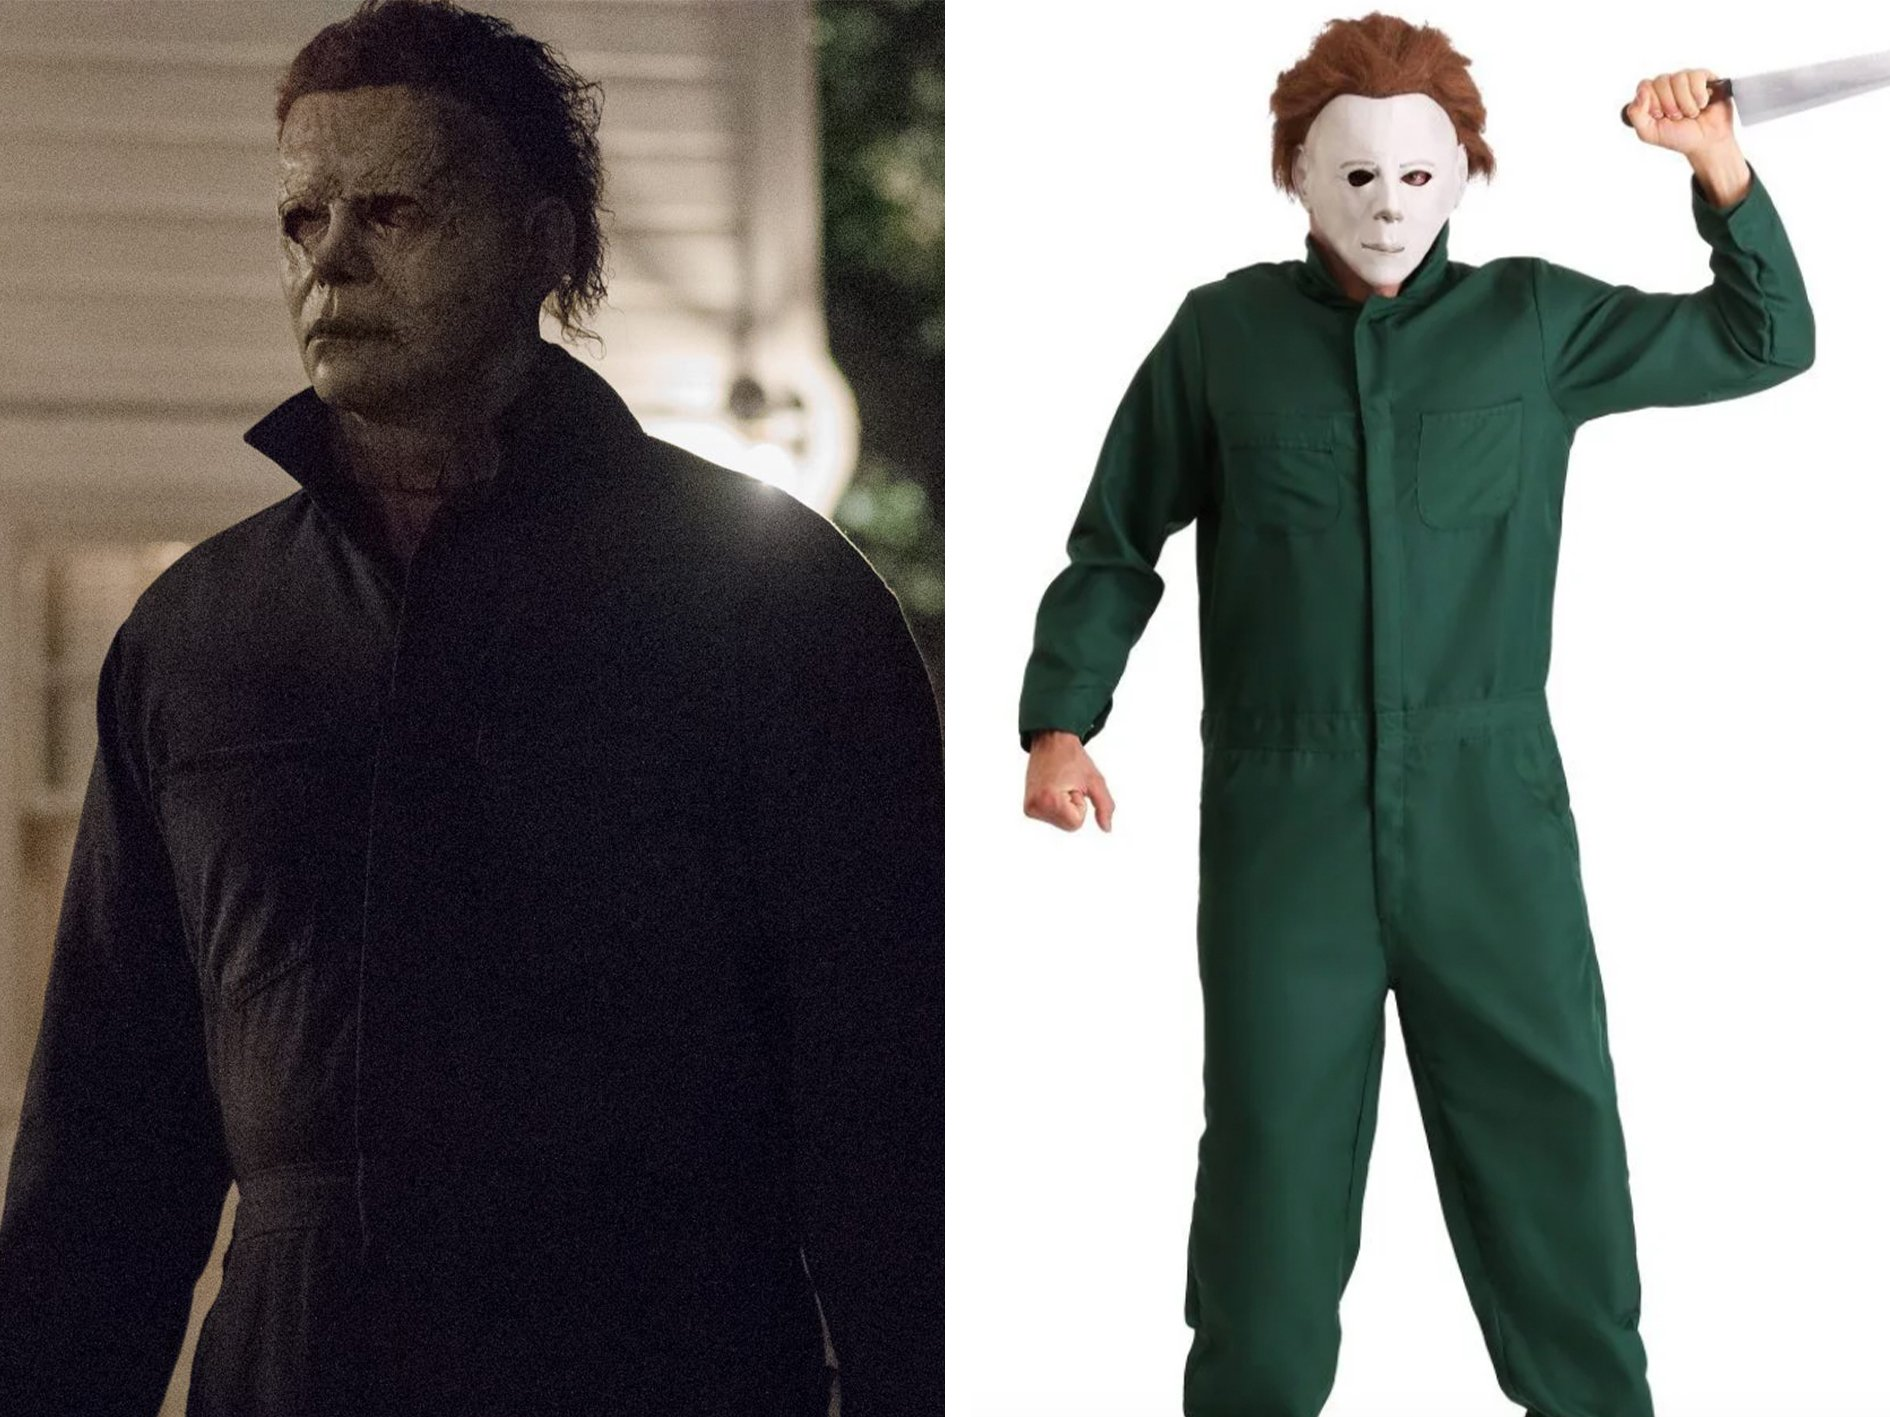 Michael Myers 15 Halloween Costumes Inspired By The 80s - Who Will You Go As?